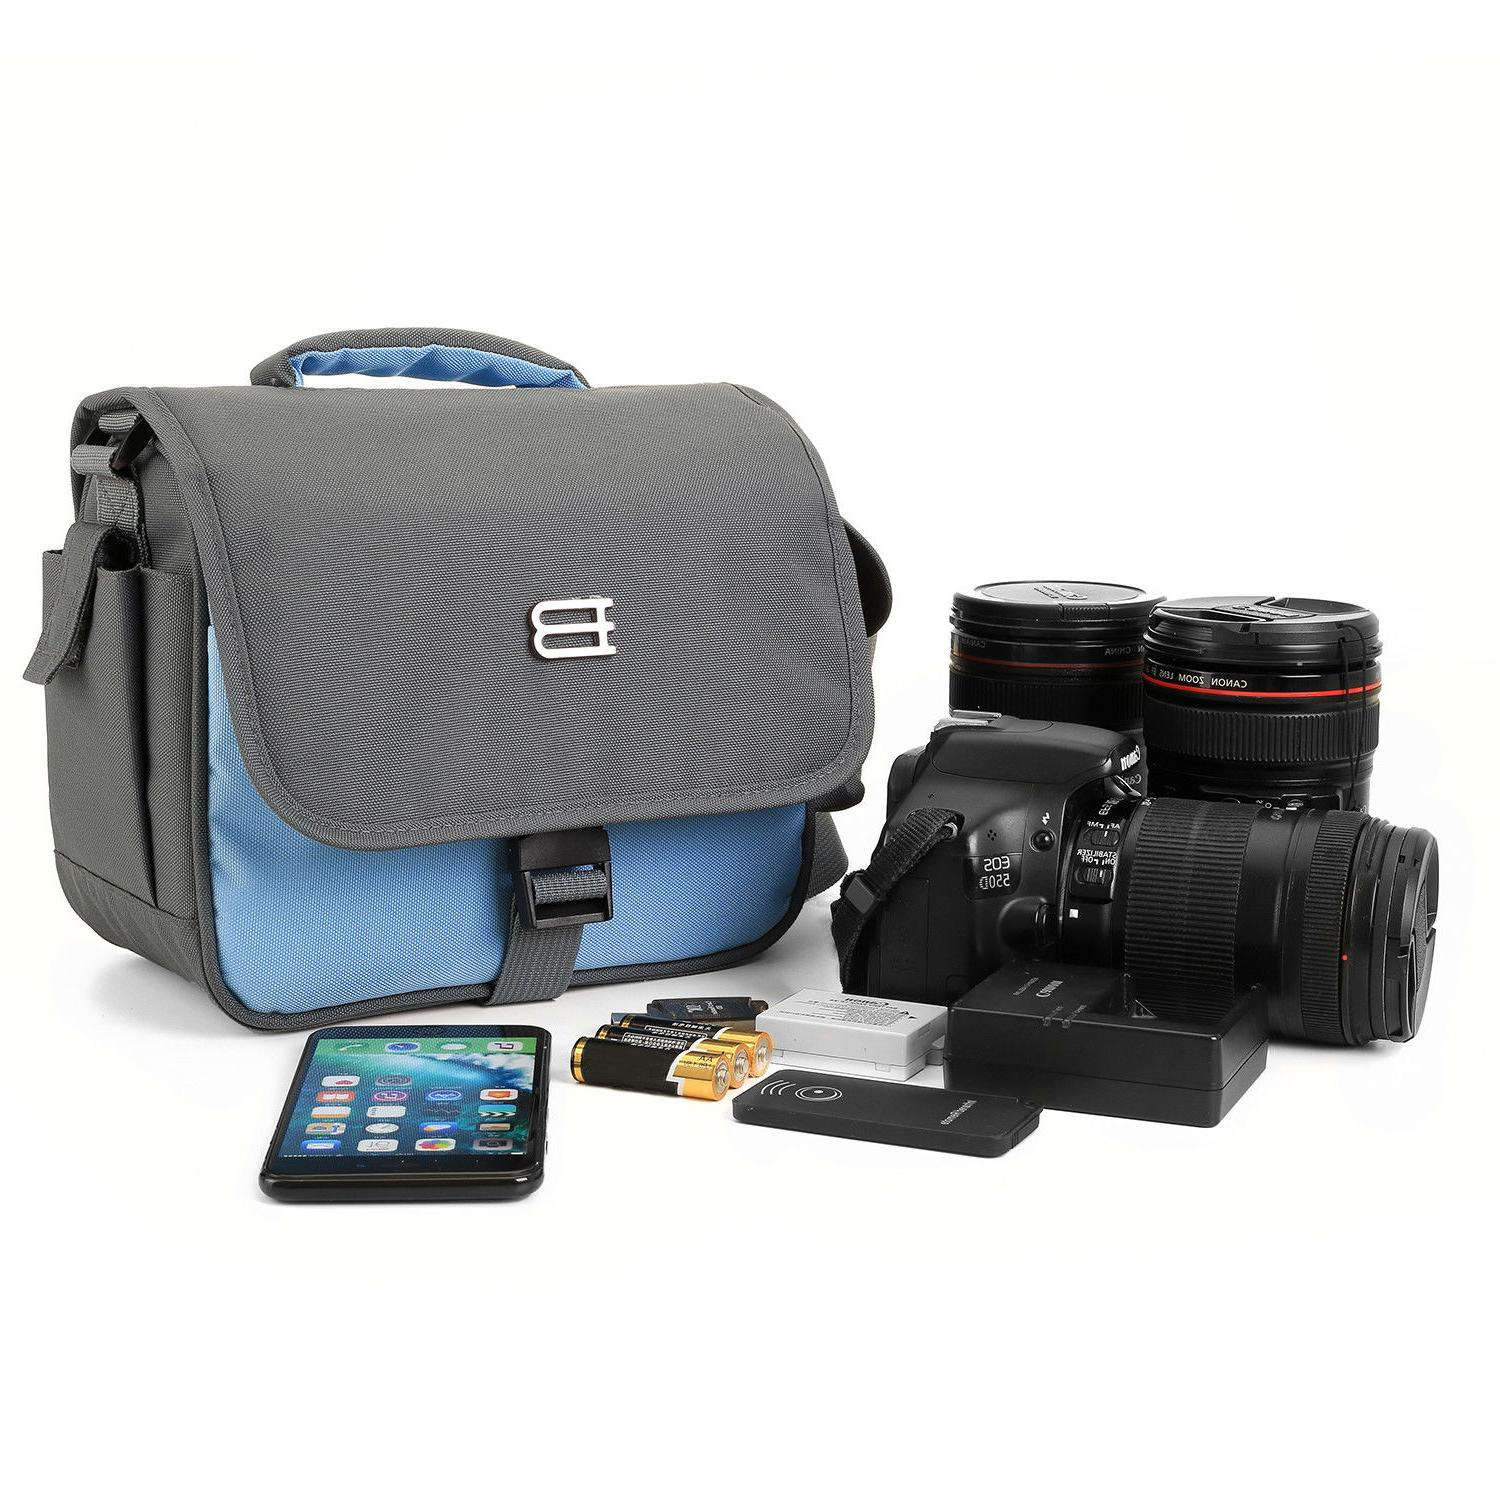 BAGSMART Digital Camera SLR Gadget